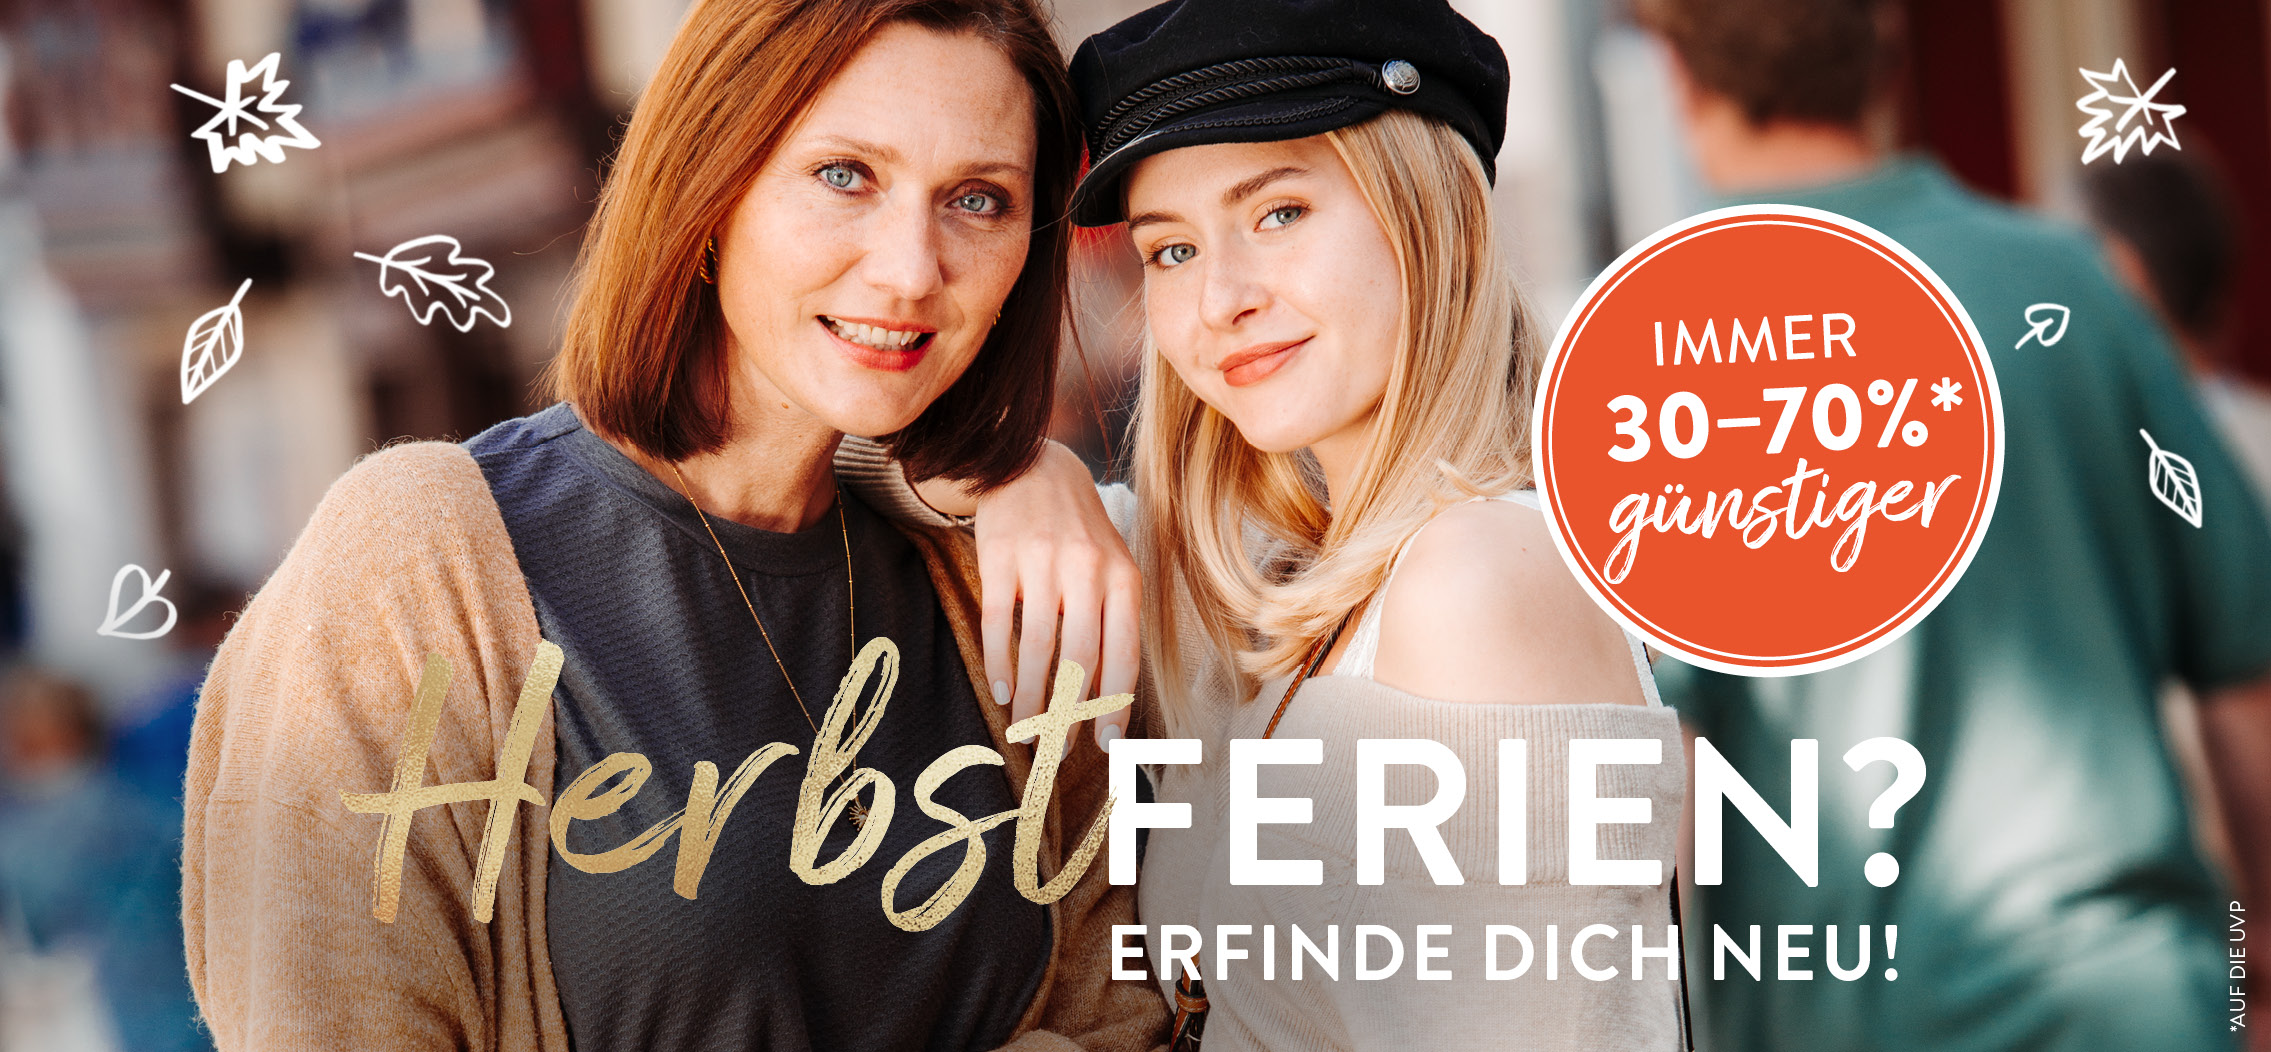 Herbstferien Shopping im Outlet